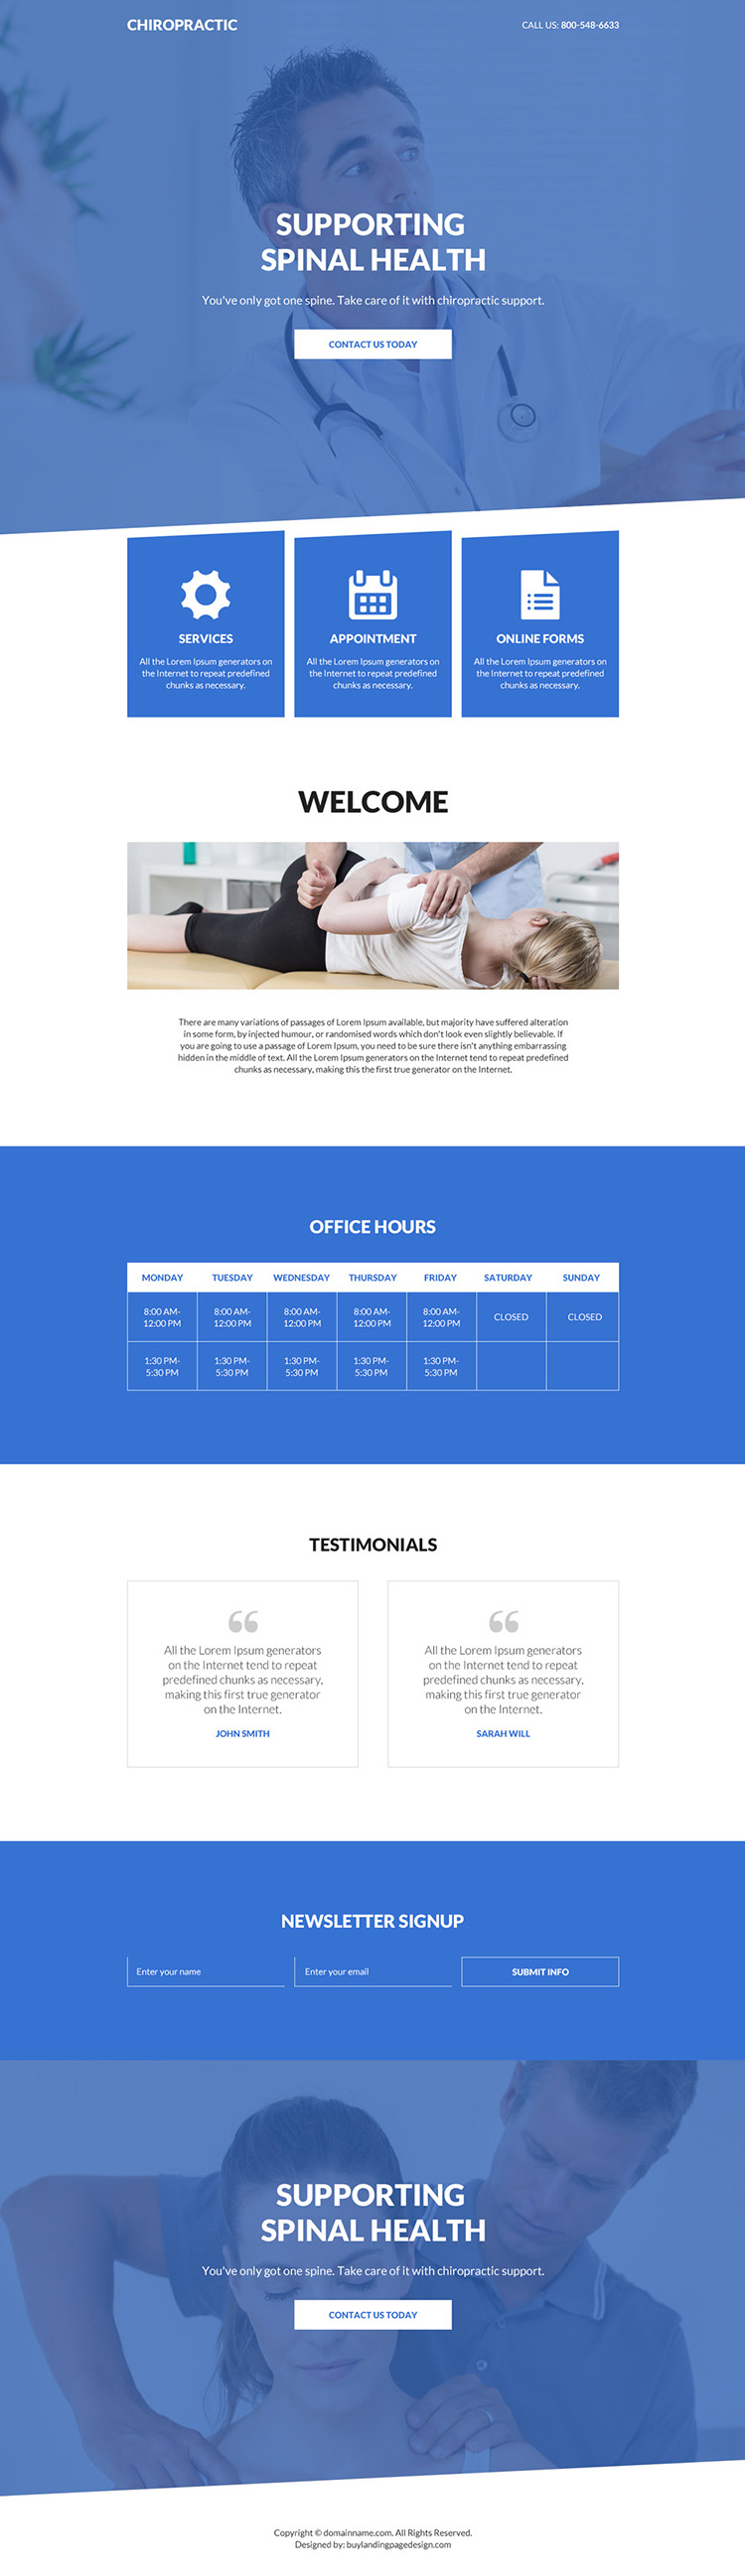 chiropractic care and support bootstrap landing page